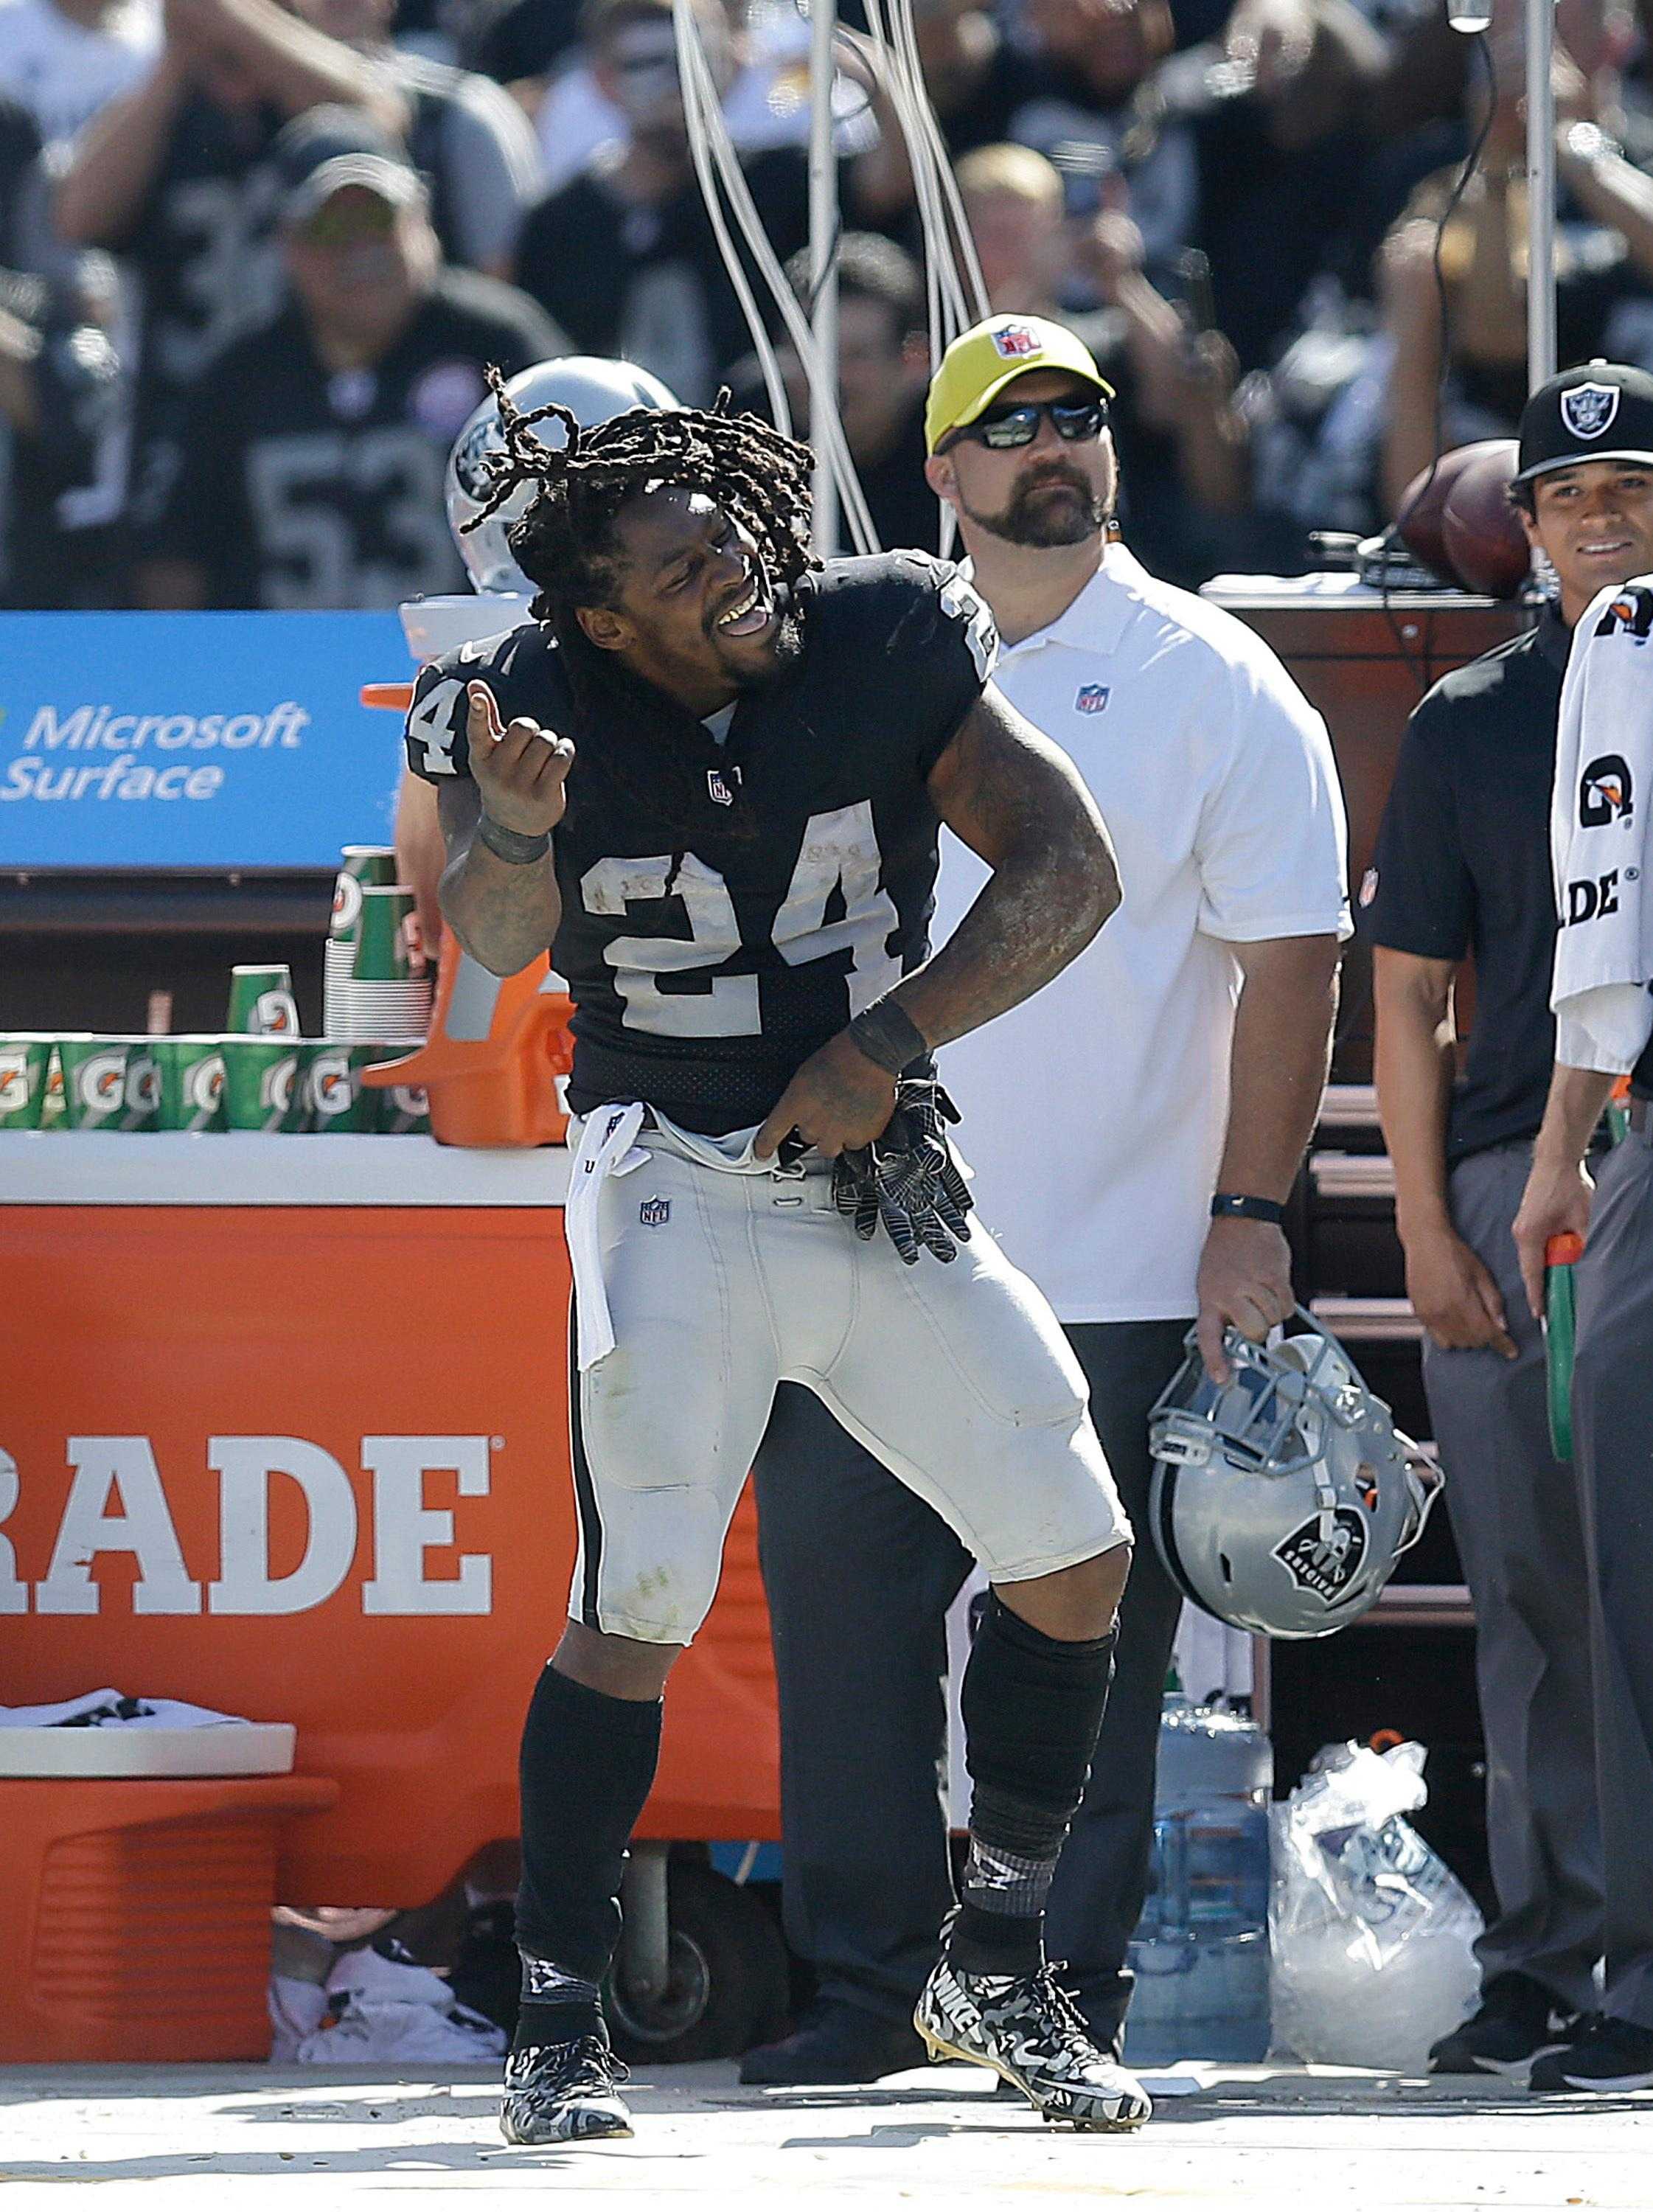 Oakland Raiders running back Marshawn Lynch (24) dances on the sideline during the second half of an NFL football game against the New York Jets in Oakland, Calif., Sunday, Sept. 17, 2017. (AP Photo/Ben Margot)